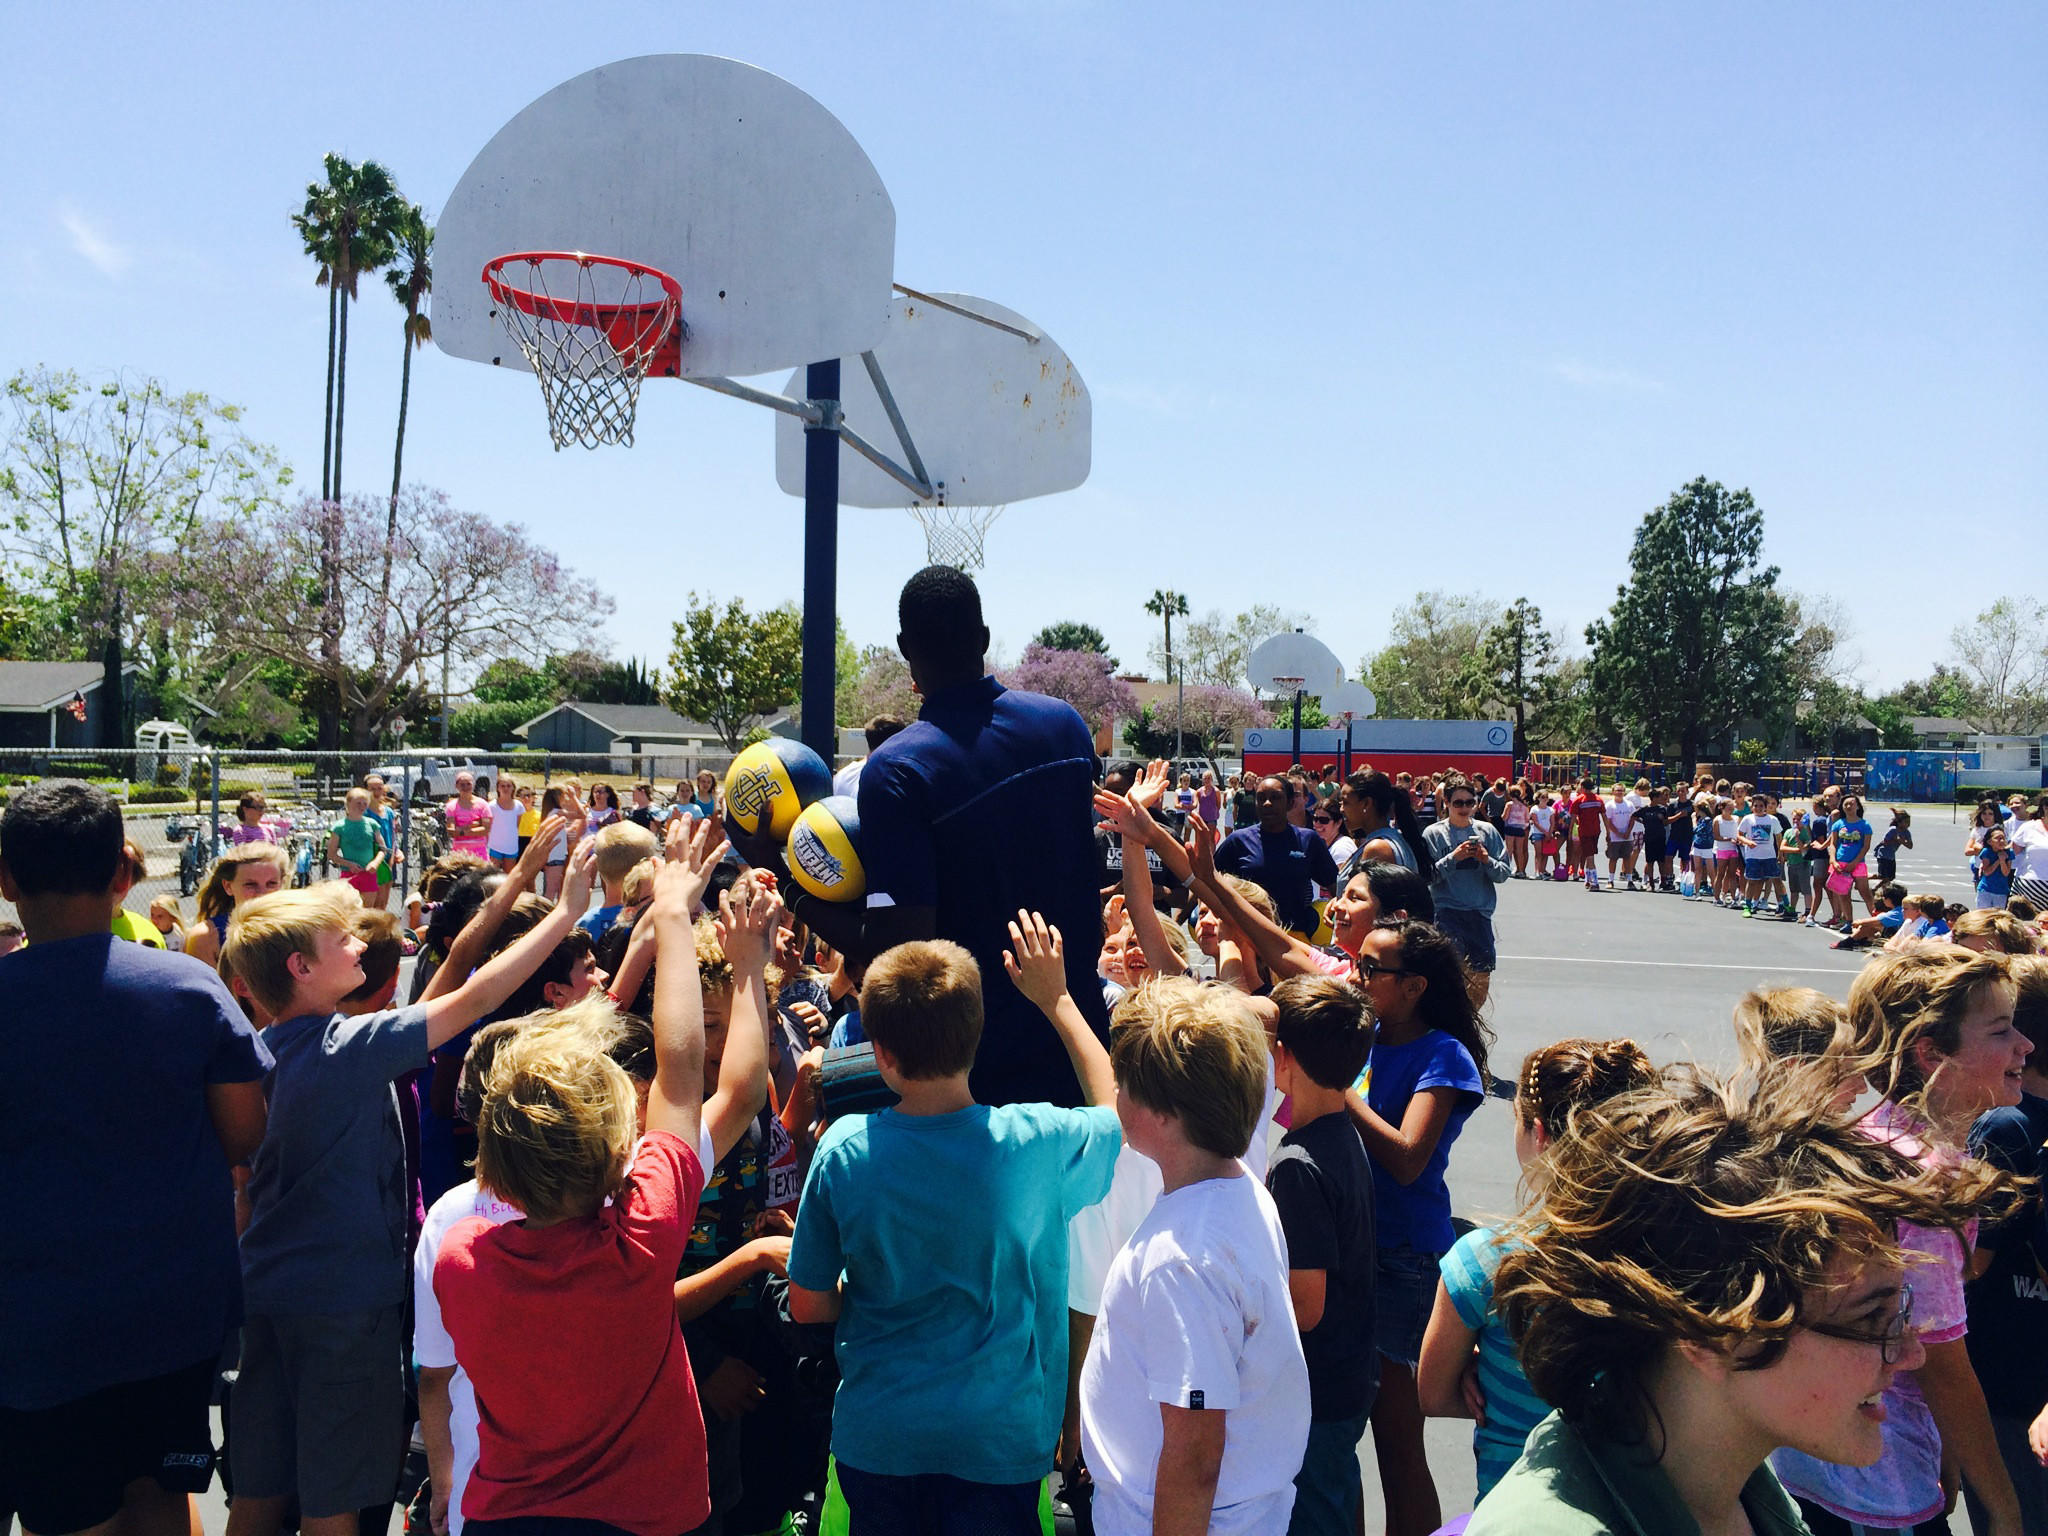 Mariners Elementary School students surround Mamadou Ndiaye, UCI's 7-foot-6 center, at the Newport Beach campus Wednesday afternoon.